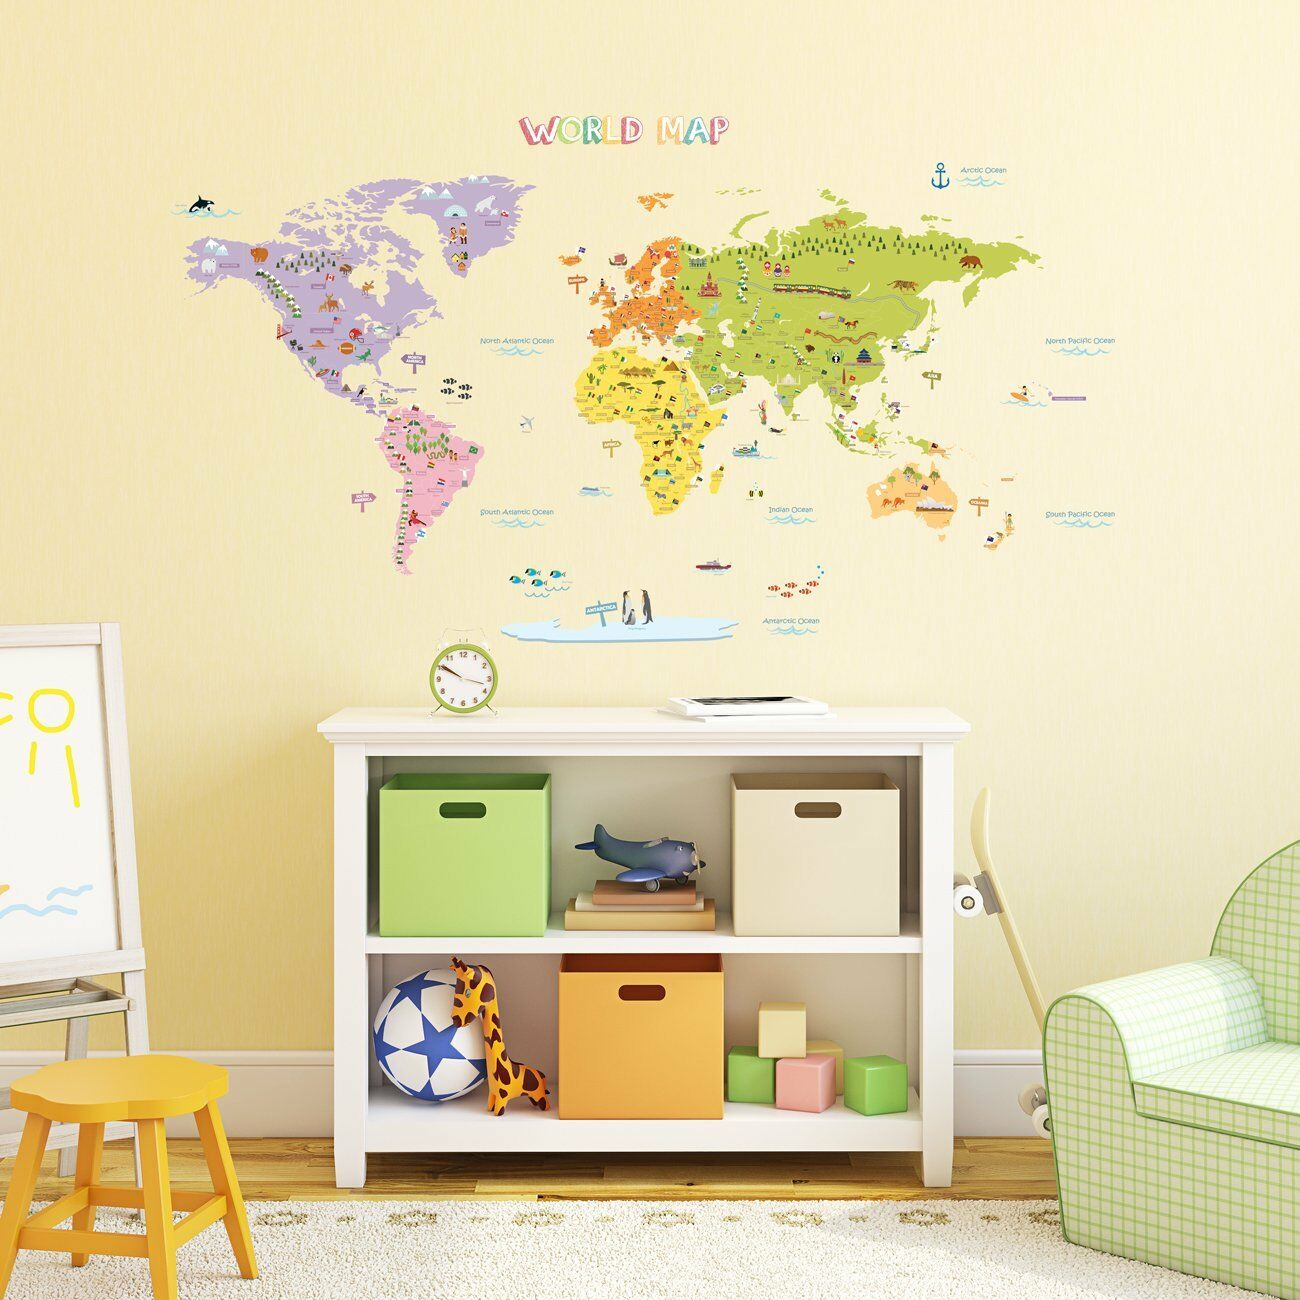 Amazing Living Room Wall Stickers Ebay Image Collection - Wall Art ...